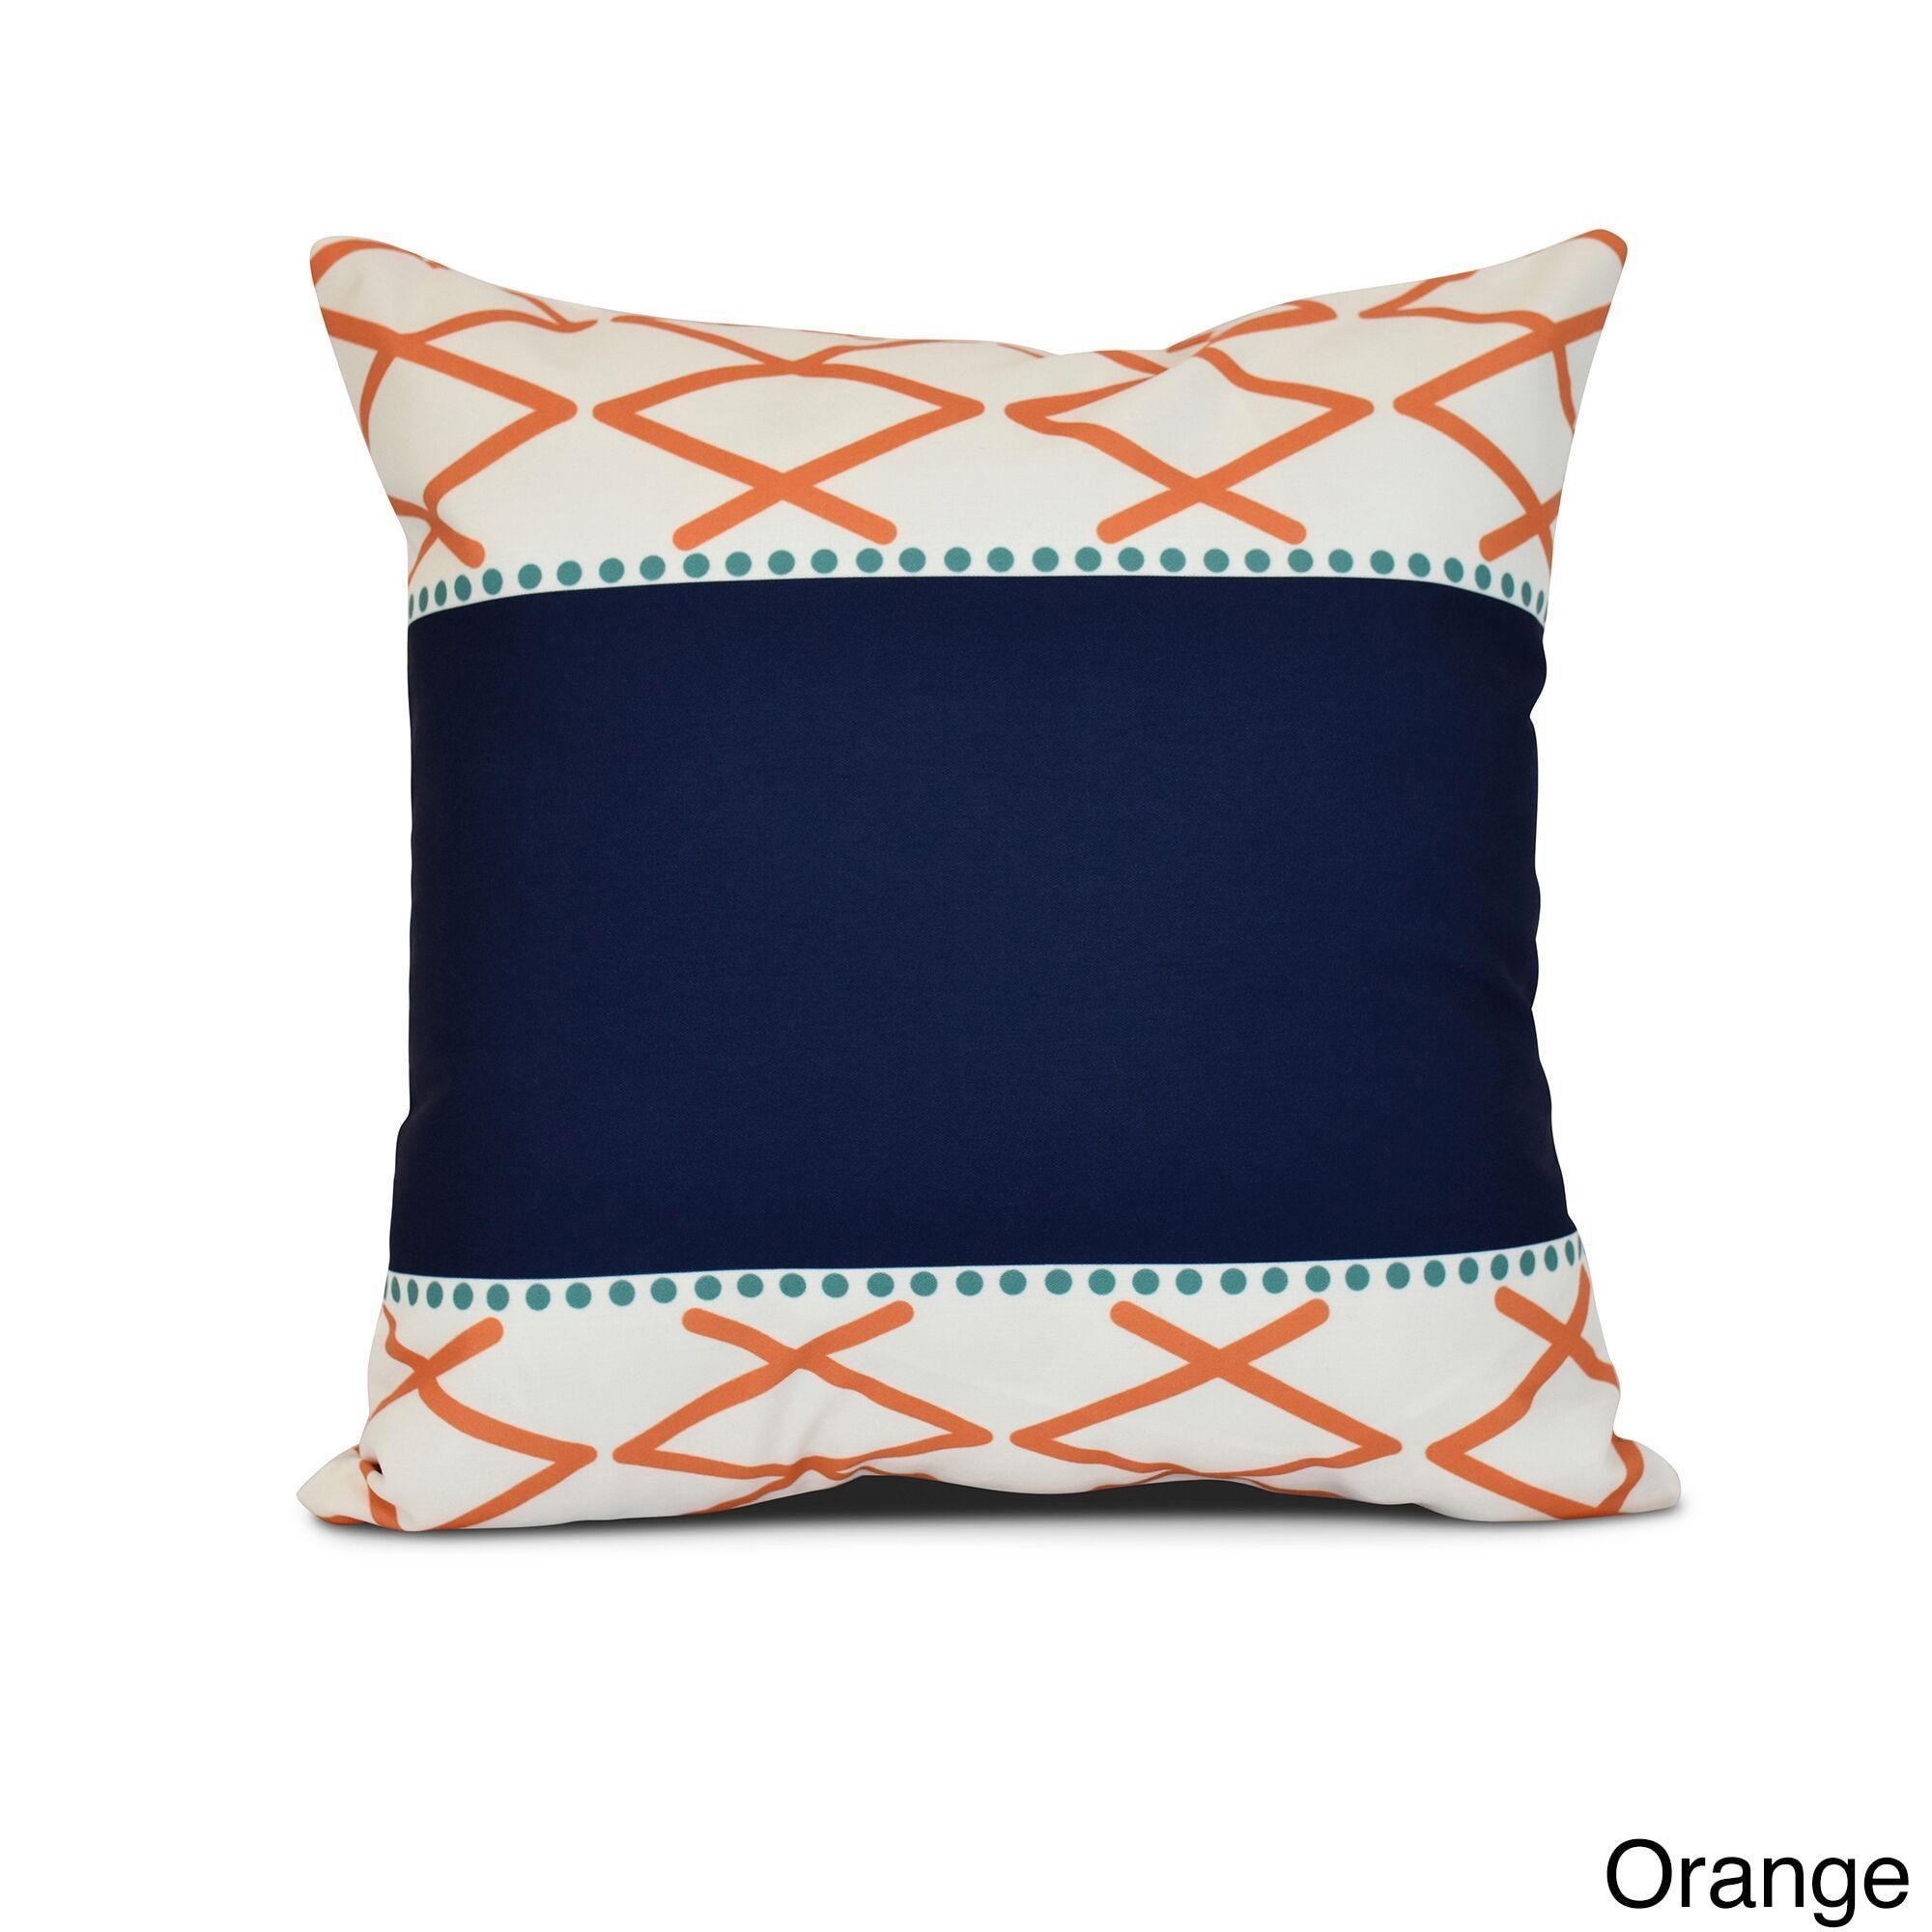 E by design knot fancy geometric print pillow x red outlet